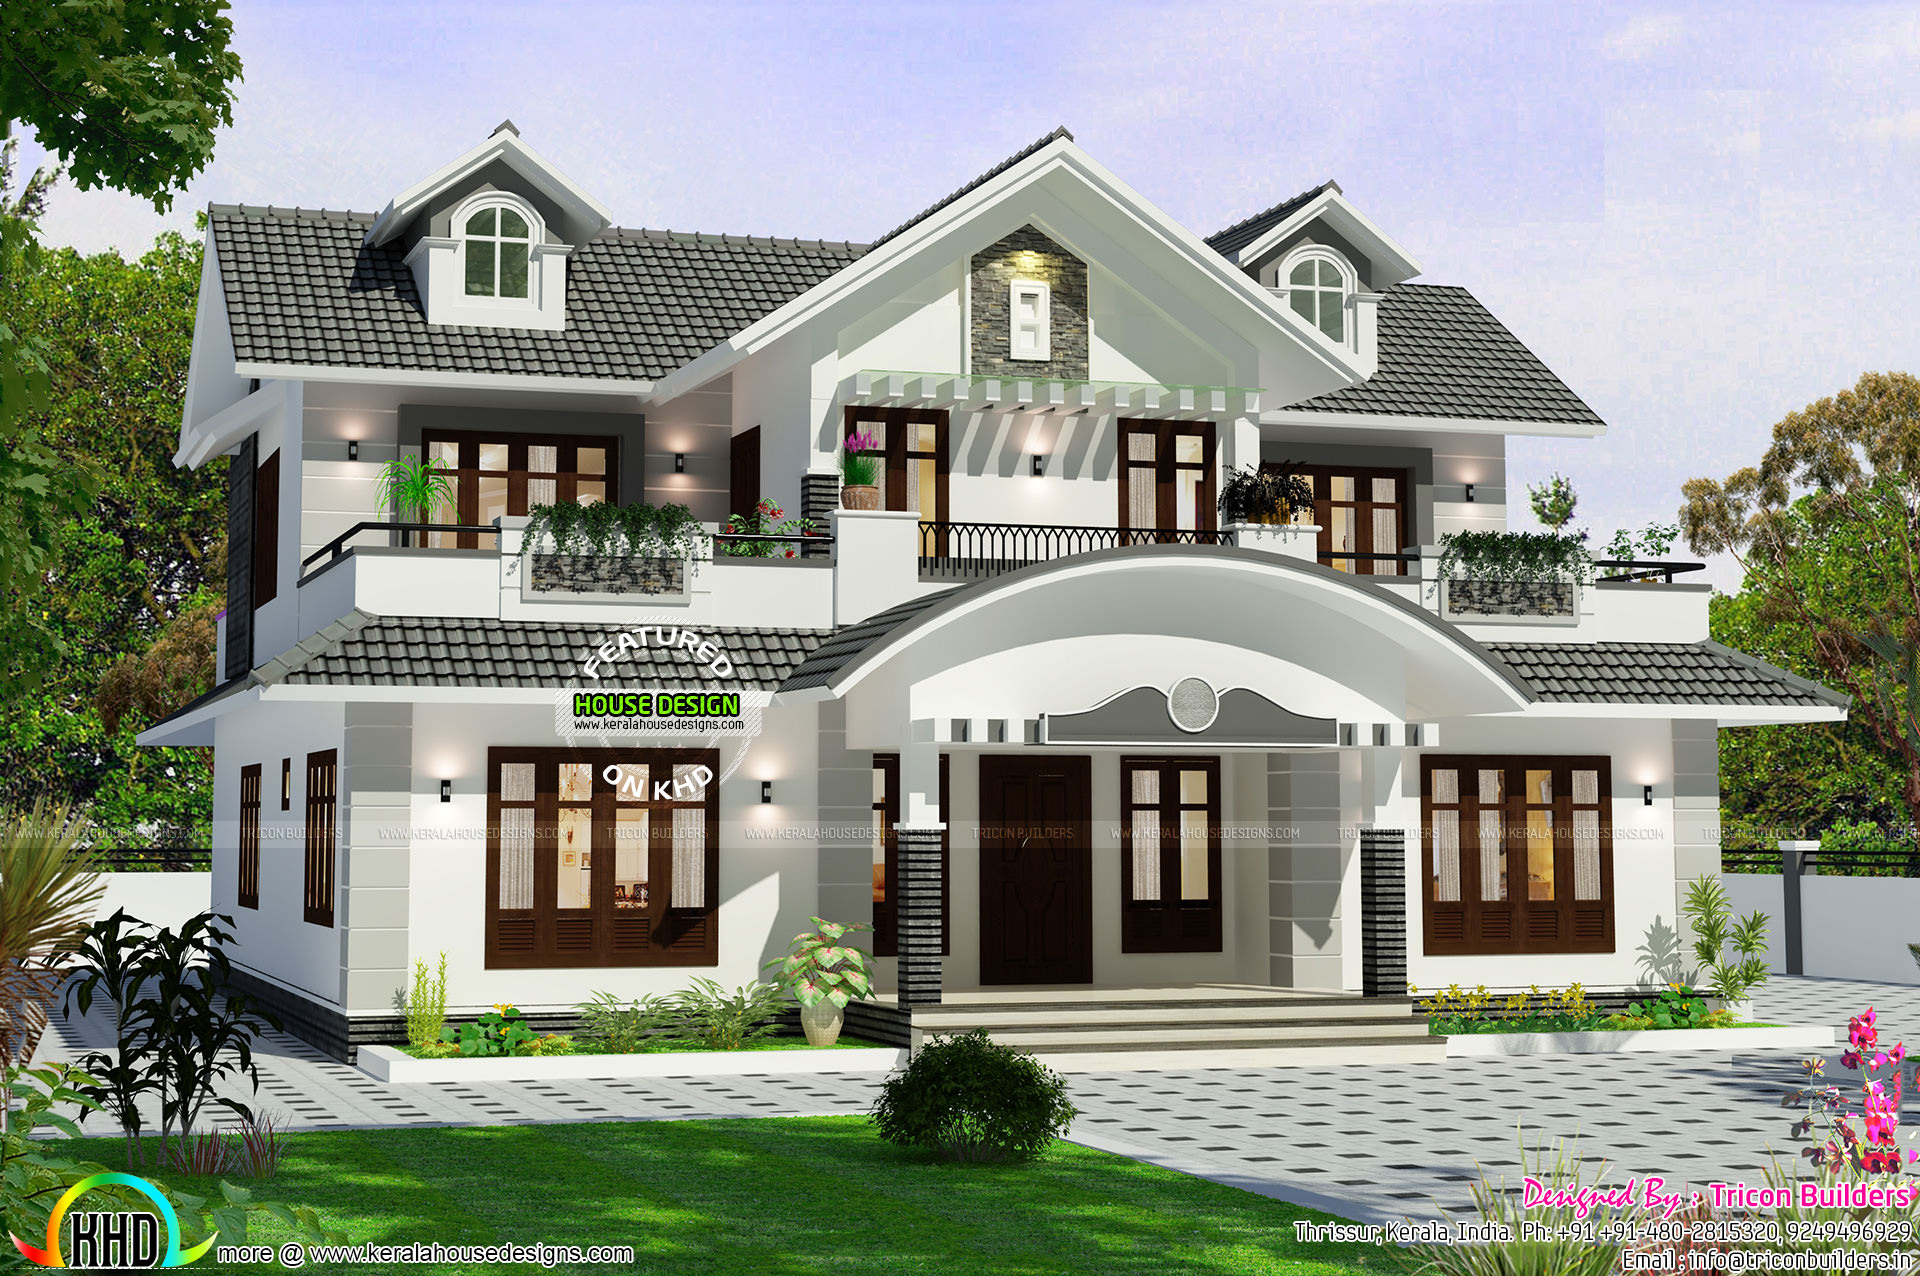 Designer home by tricon builders kerala home design and for House design online